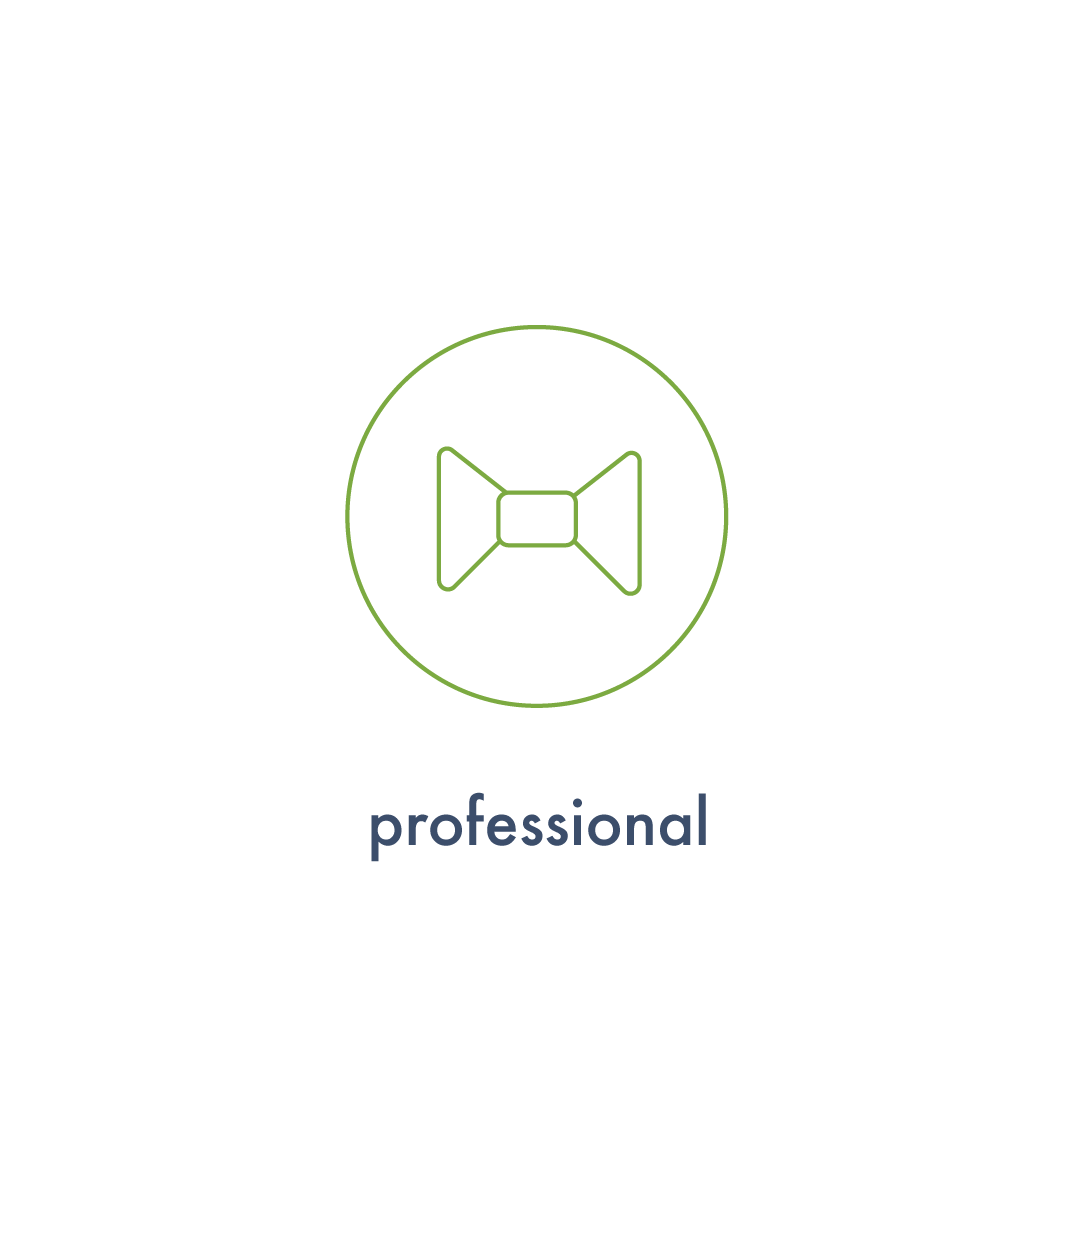 icon_professional_4-01.png